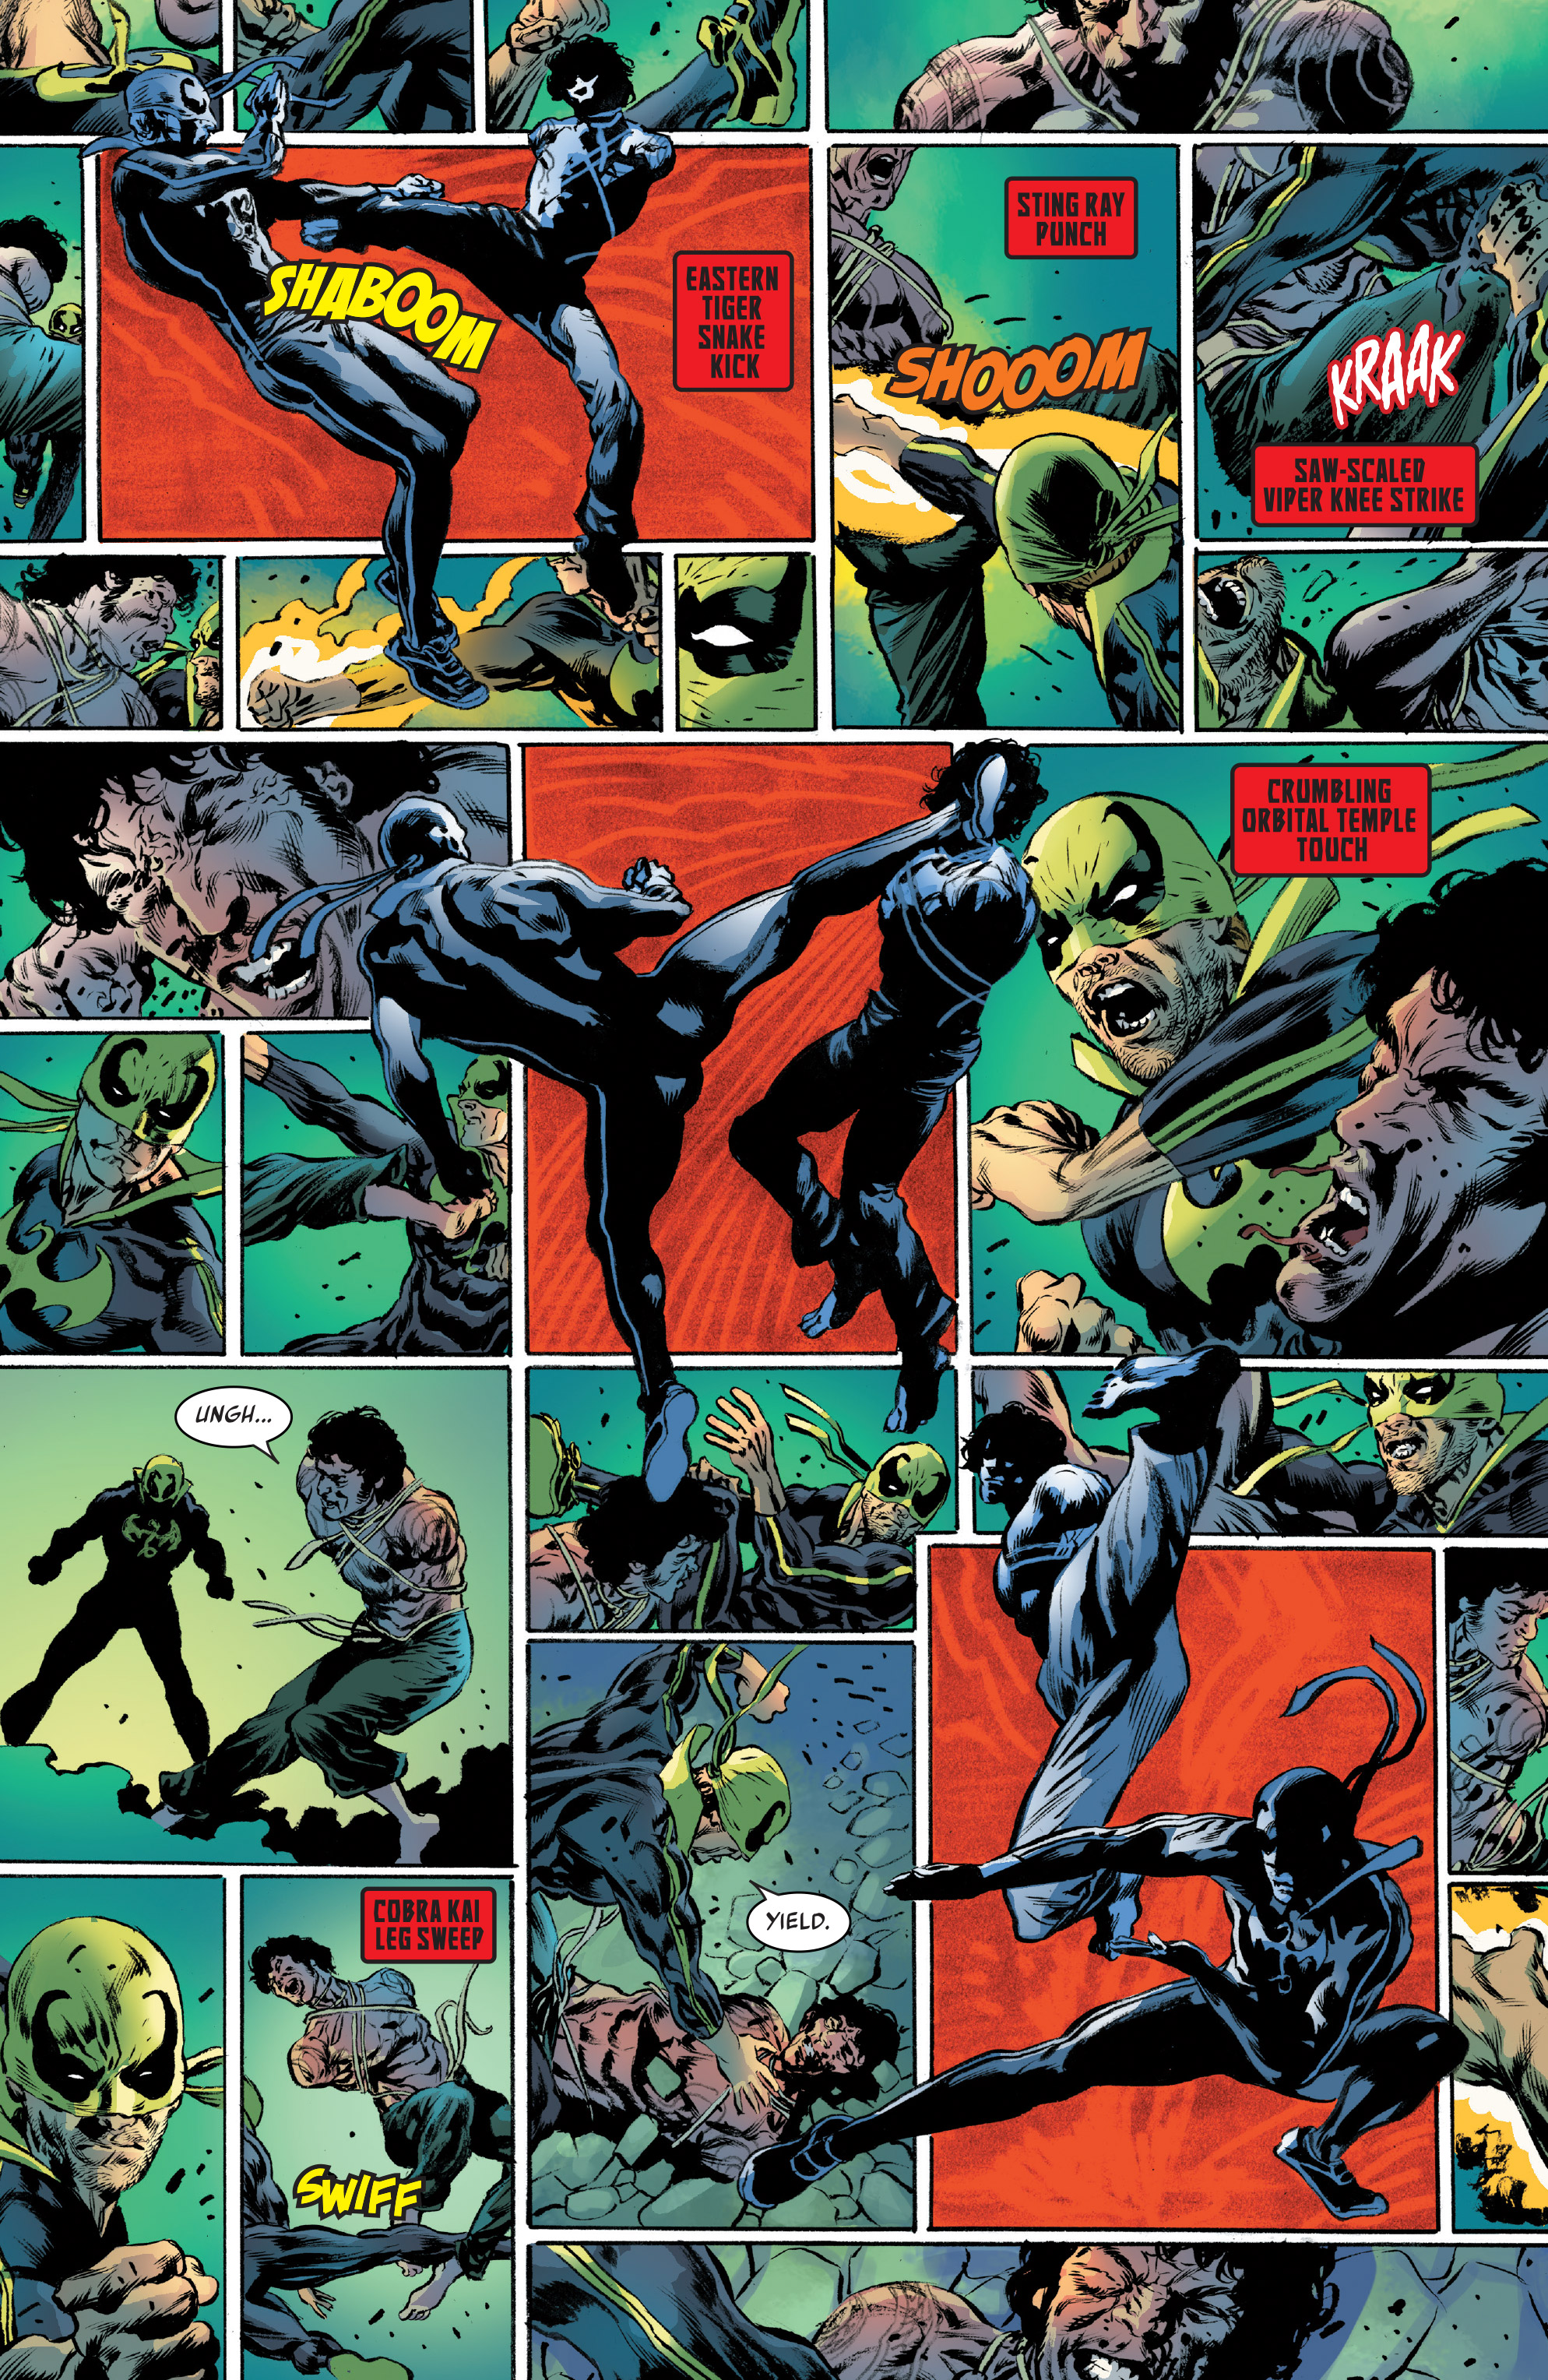 Iron Fist (2017-) Chapter 3 - Page 17